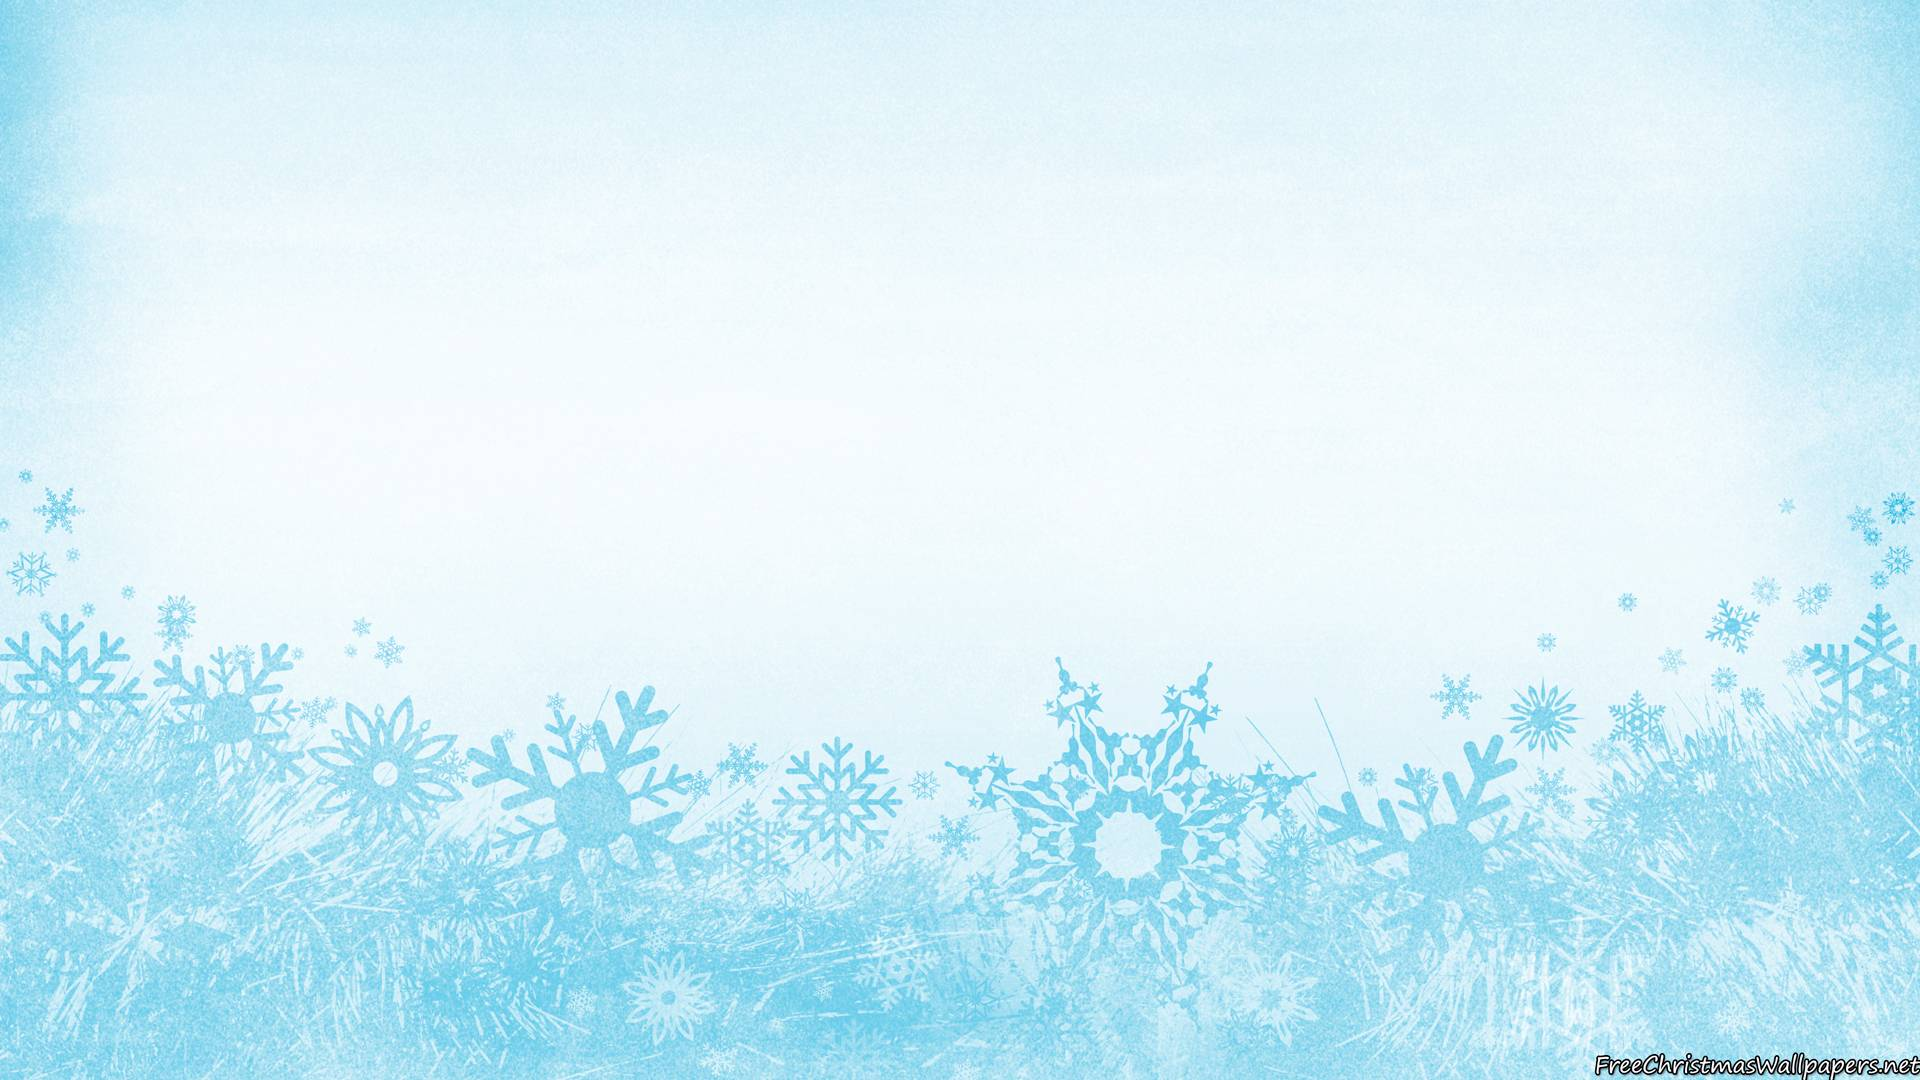 Free Christmas Wallpaper Backgrounds - Wallpaper Cave